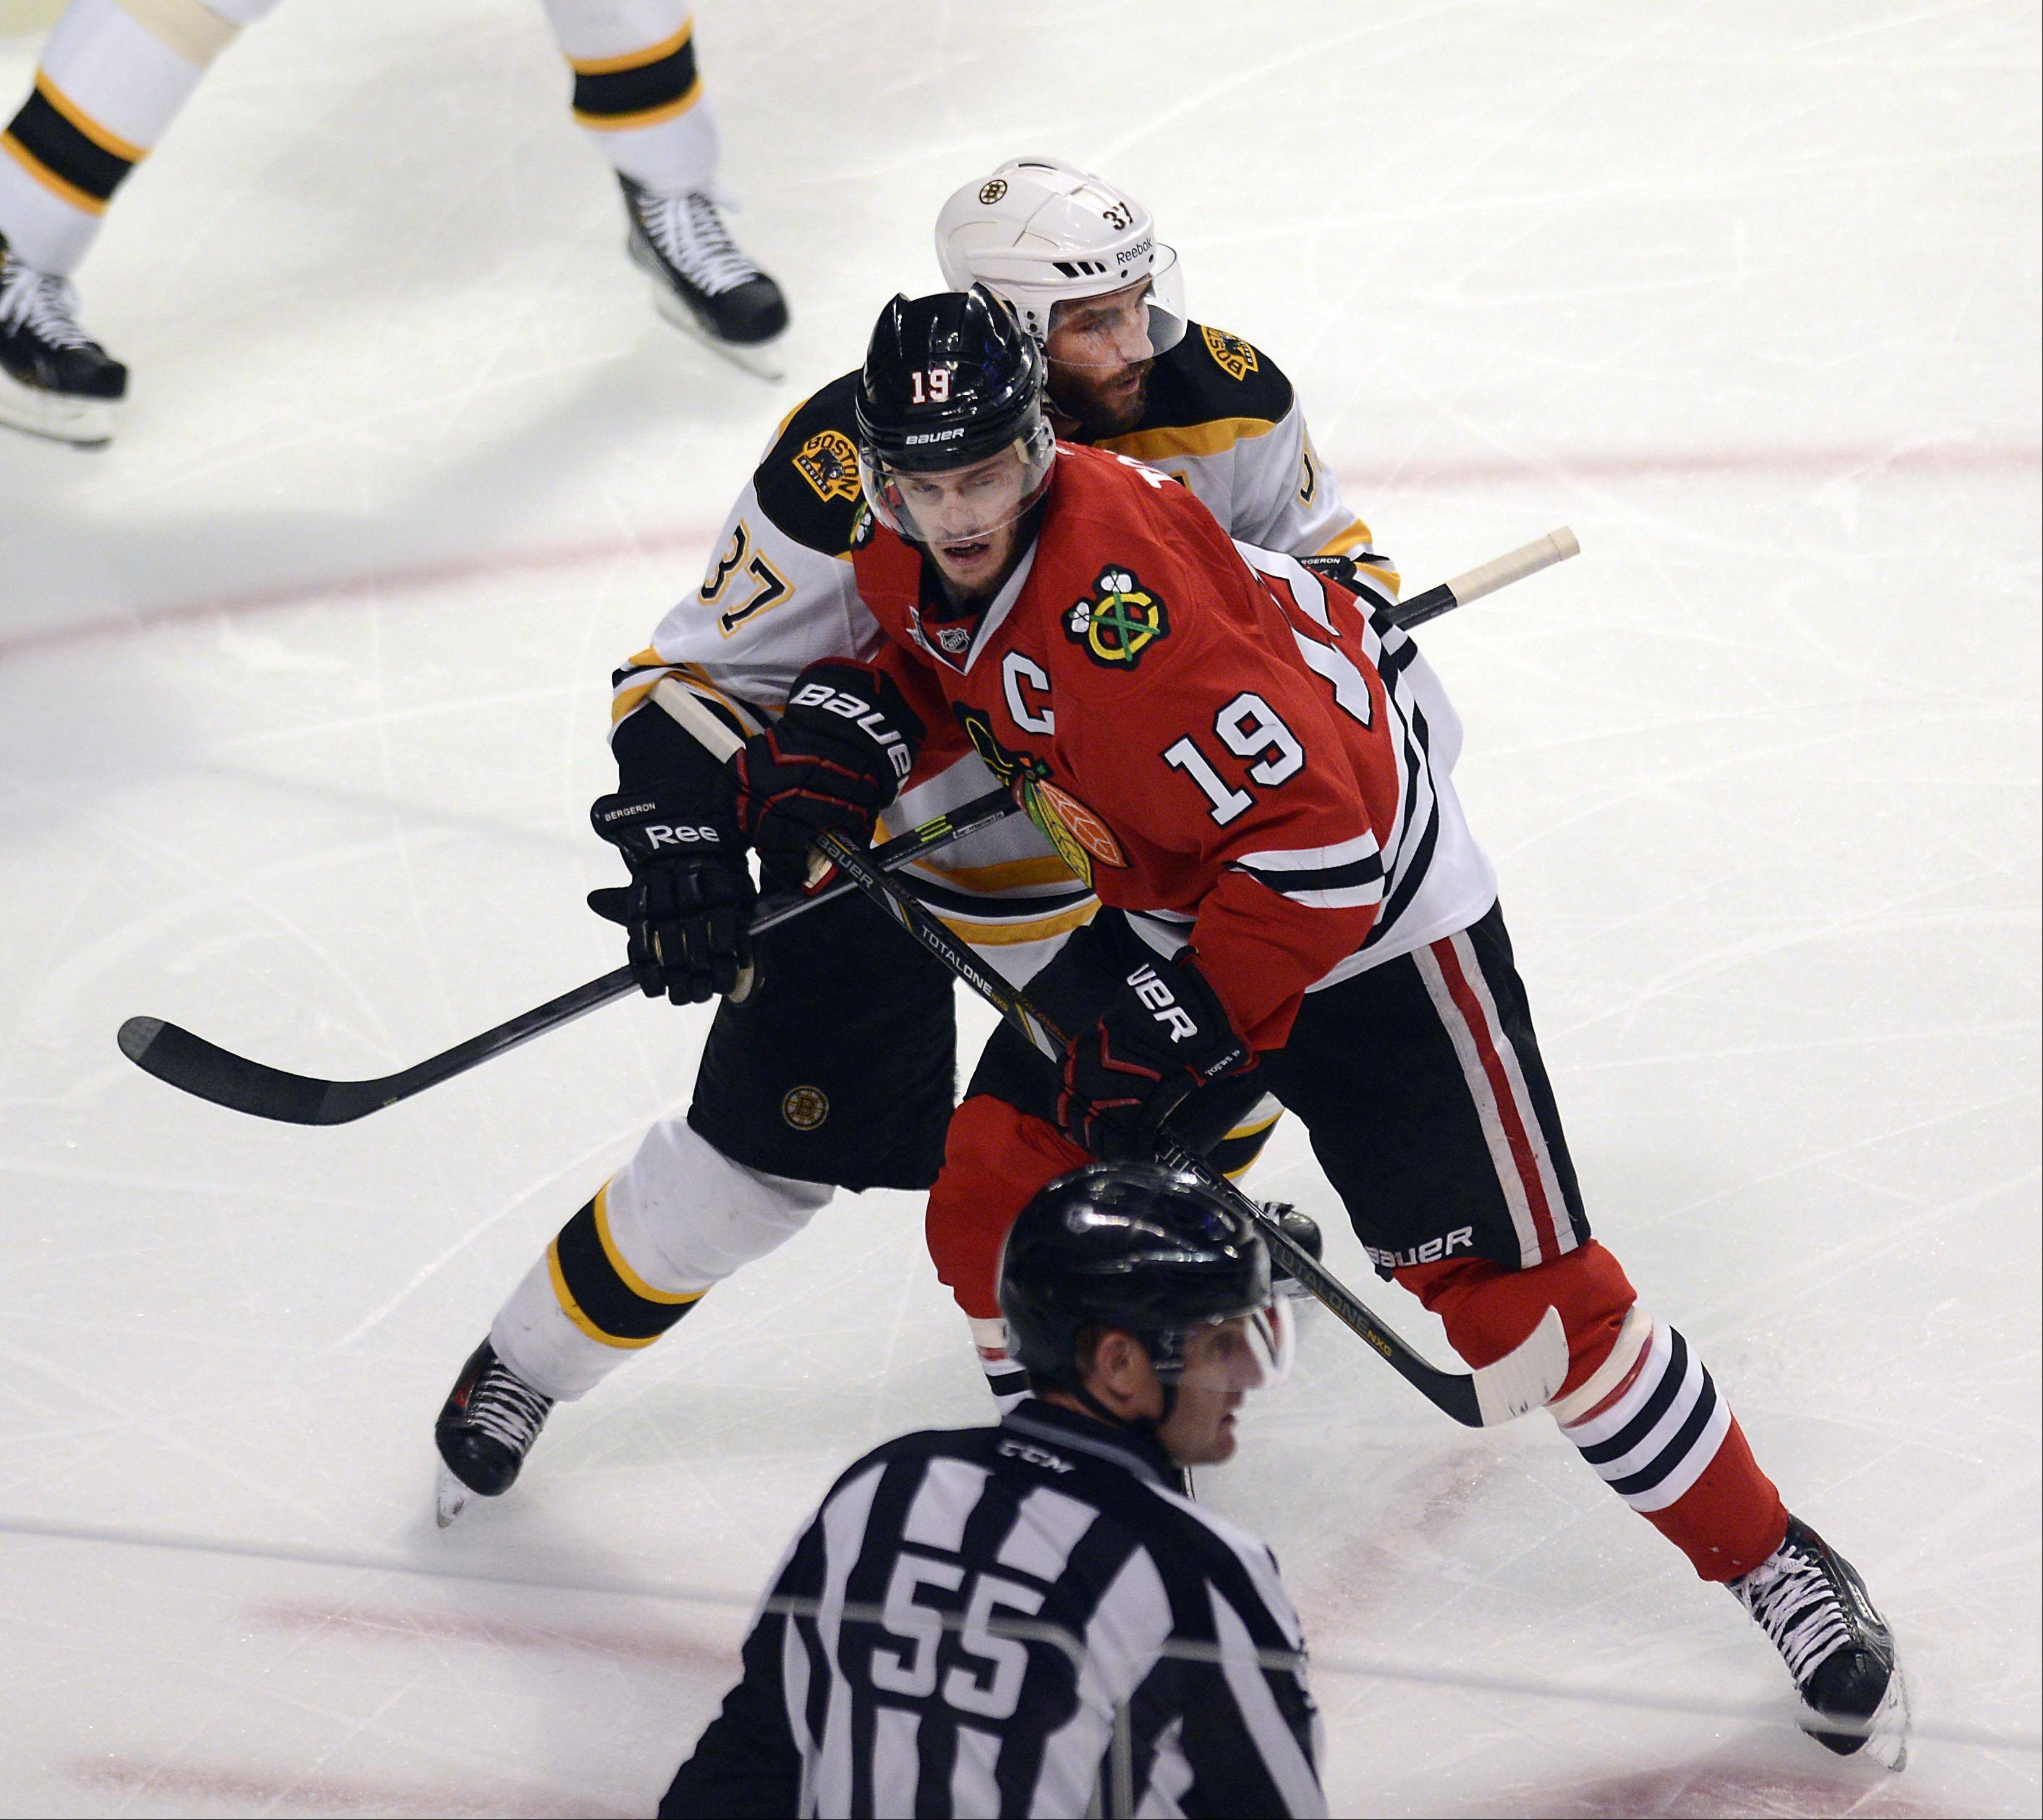 The Bruins' Patrice Bergeron and Blackhawks captain Jonathan Toews are both questionable for tonight's Game 6 of the Stanley Cup Final in Boston because of injuries suffered Saturday in Game 5 at the United Center.